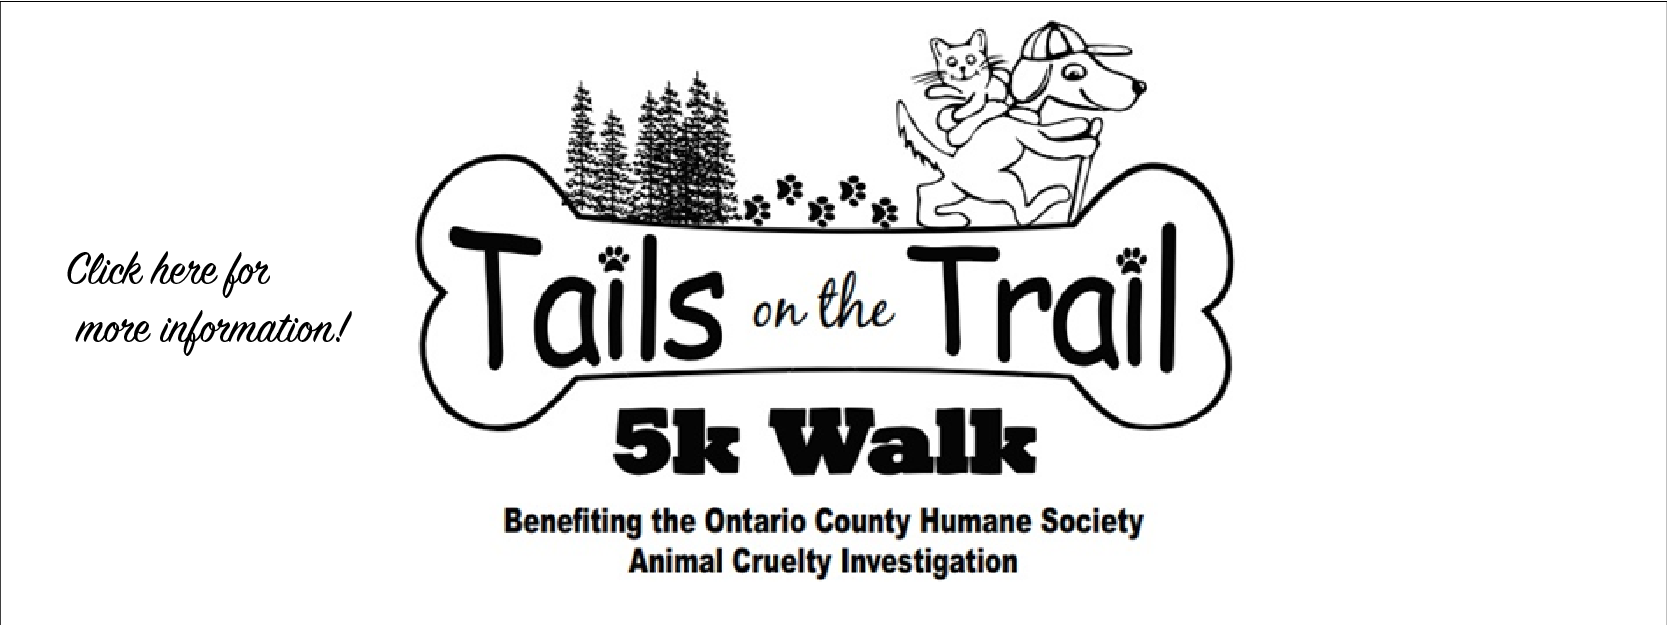 5th annual tails on the trail